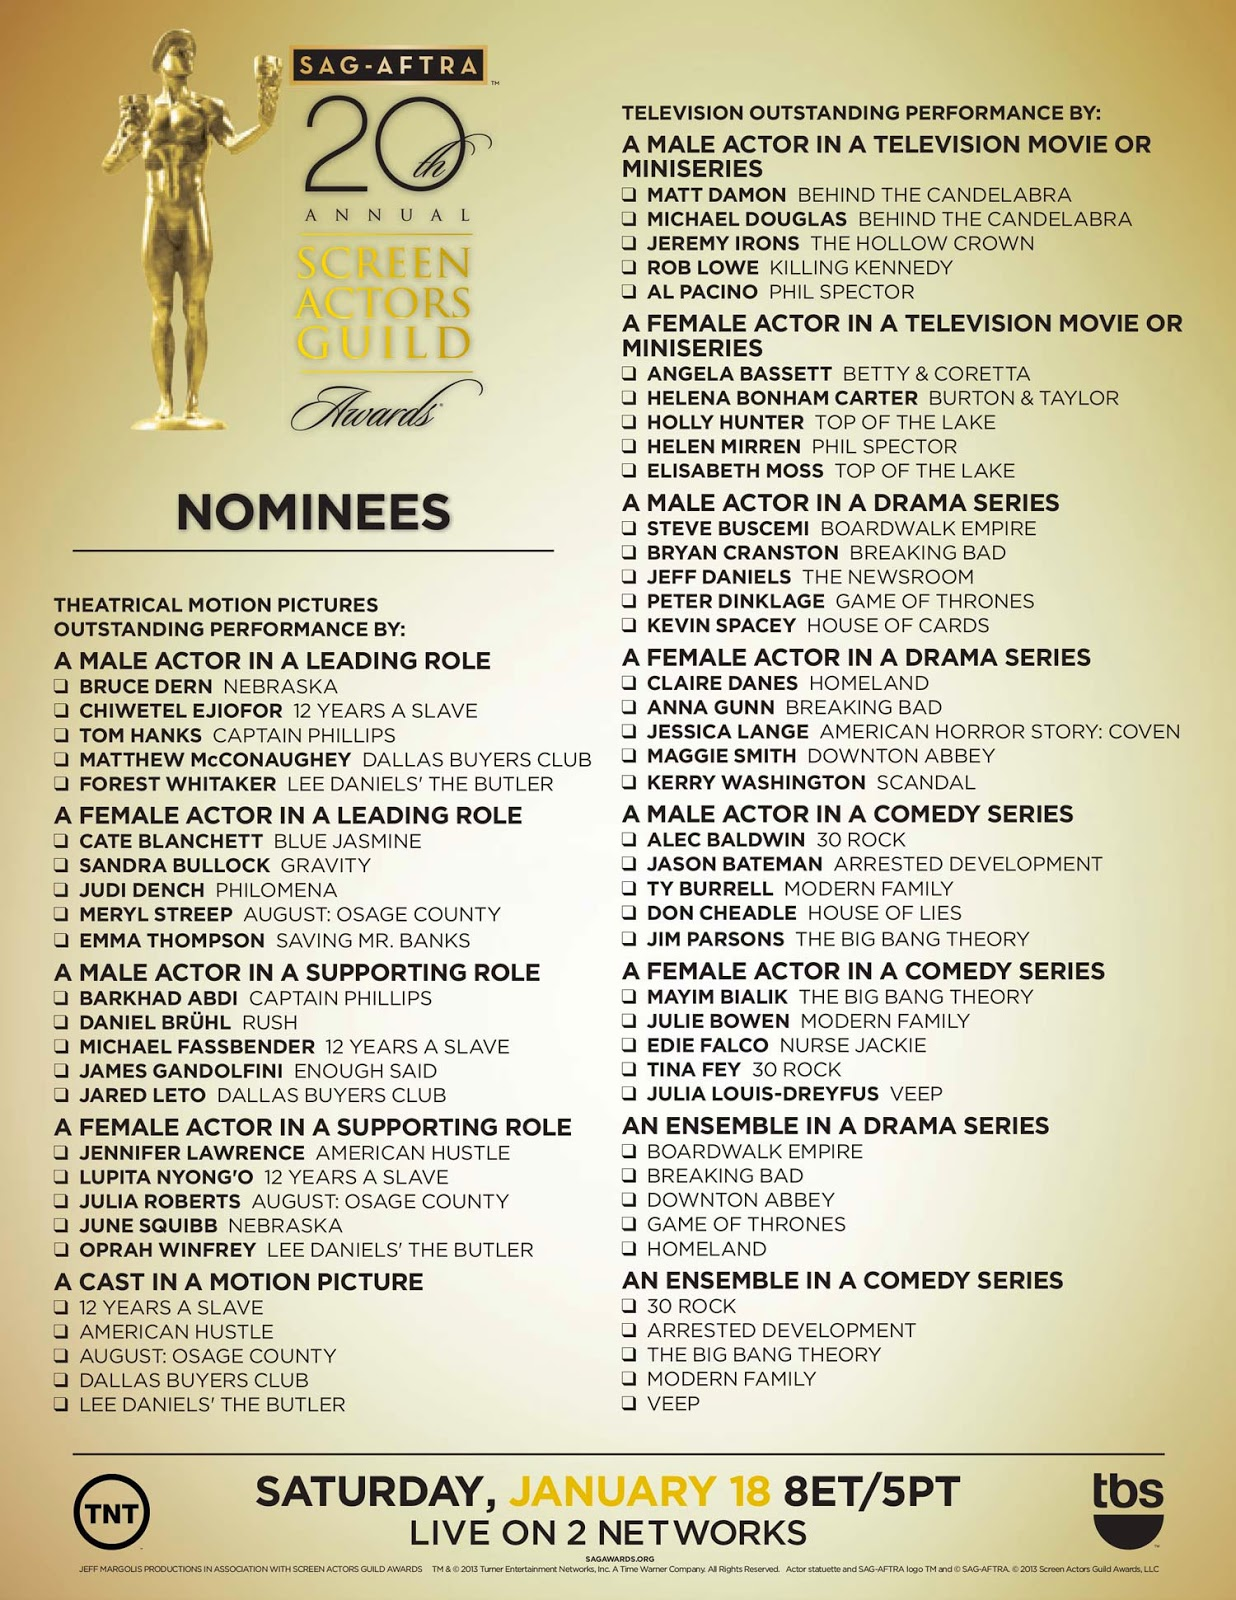 20th Sag Awards Printable Ballot 2014 on oscar nominations 2016 predictions